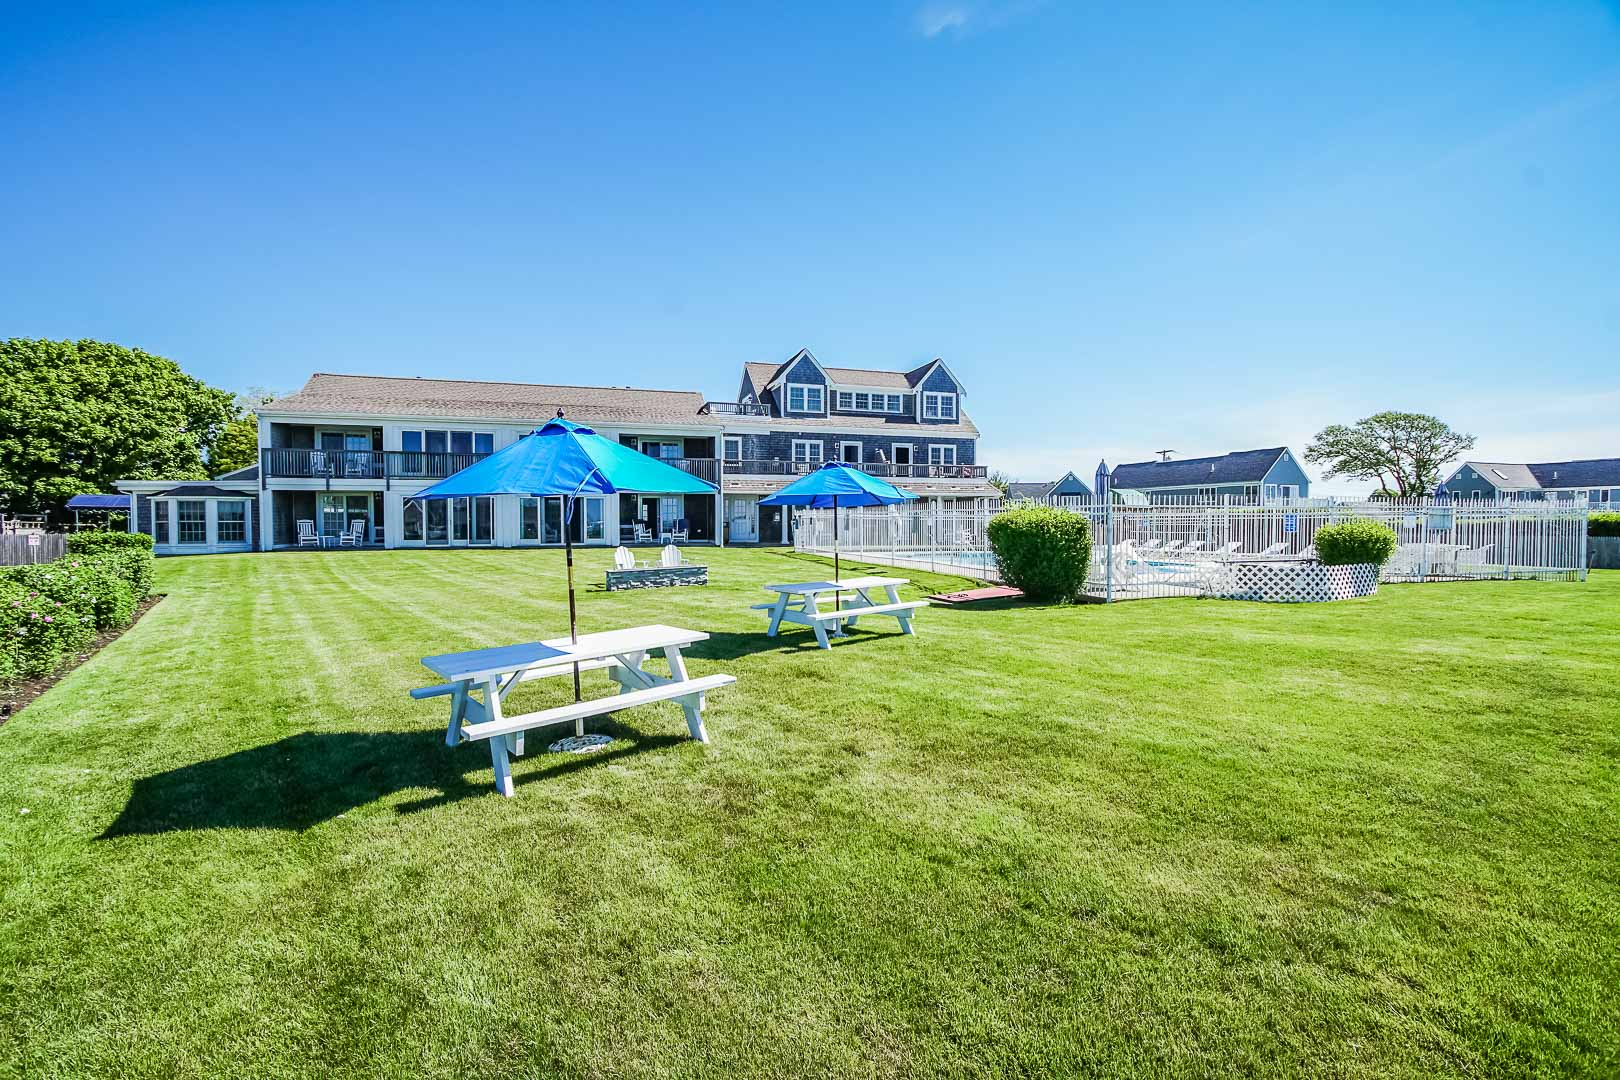 A charming picnic area at VRI's Beachside Village Resort in Massachusetts.